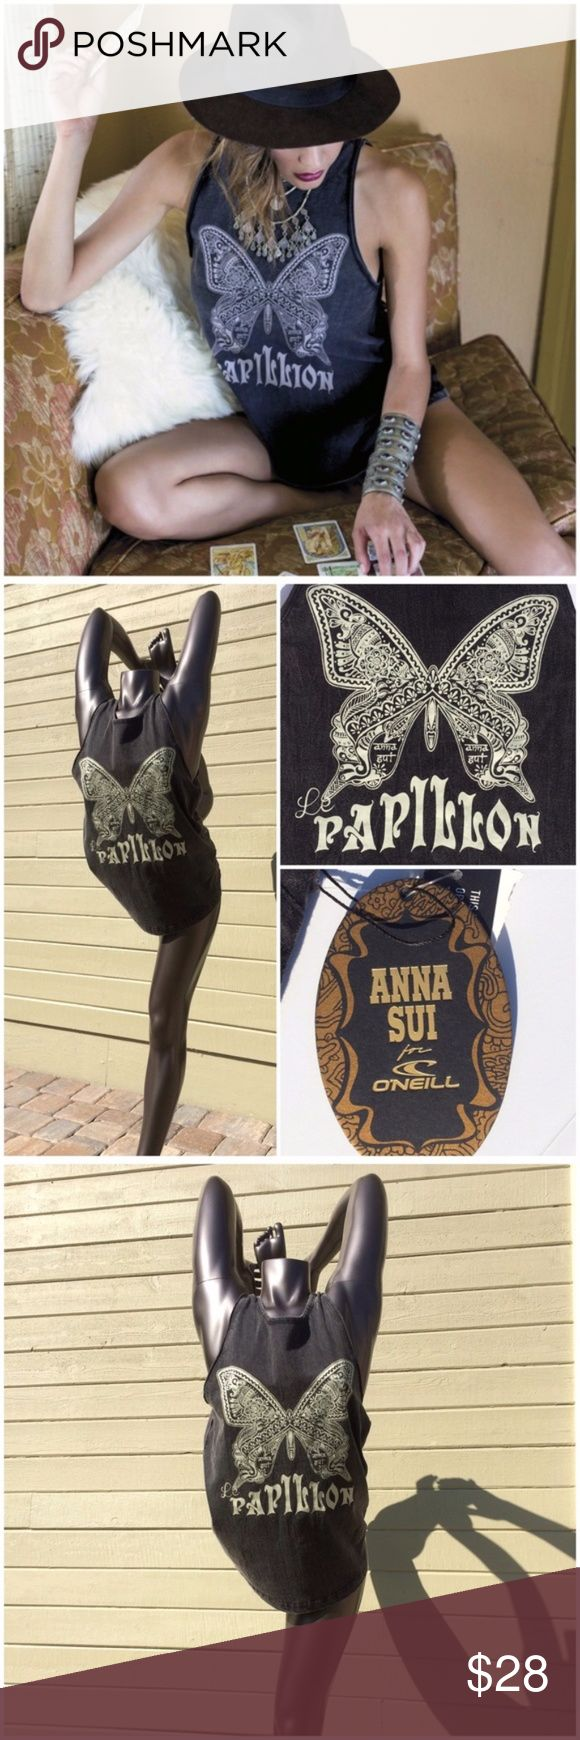 Anna Sui O'NEILL Collaboration Papillon Tank Stunning 70's inspired design by Anna Sui. Become a gypsy warrior, the exclusive O'NEILL collaboration is inspired by the light of the moon for beautiful, whimsical styling from dusk to dawn. Features Anna's signature butterfly, acid wash for a vintage look, Anna for O'Neill woven label and hang tag, 100% cotton, (ZR1 O'Neill Tops Tank Tops